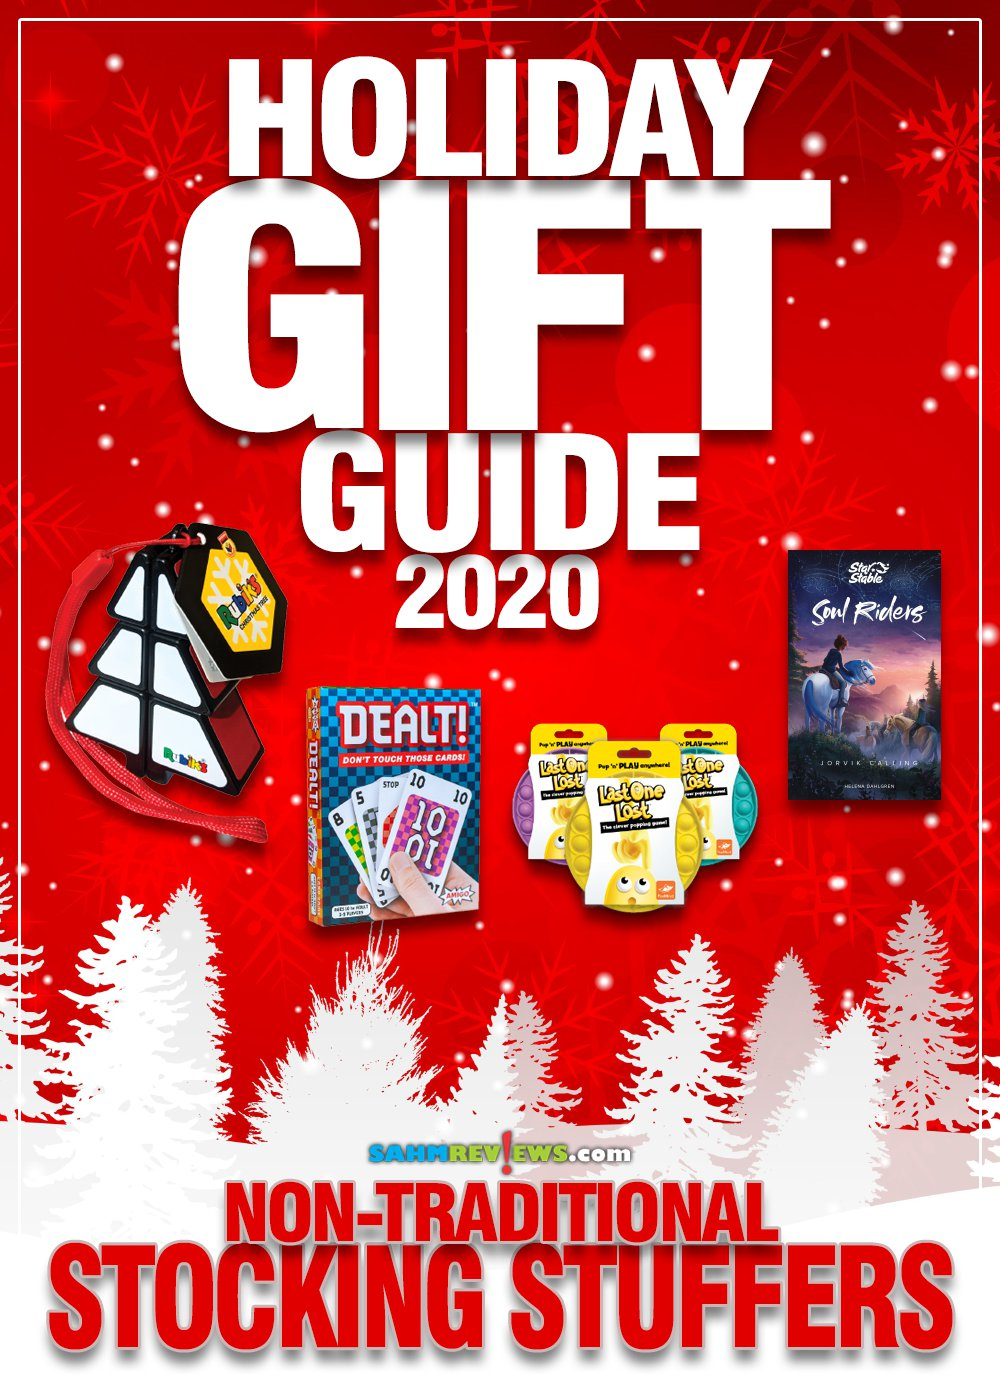 Stocking stuffers don't have to be candy and sweets. Think outside the box with these inexpensive game, book and toy ideas in our Holiday Gift Guide! - SahmReviews.com